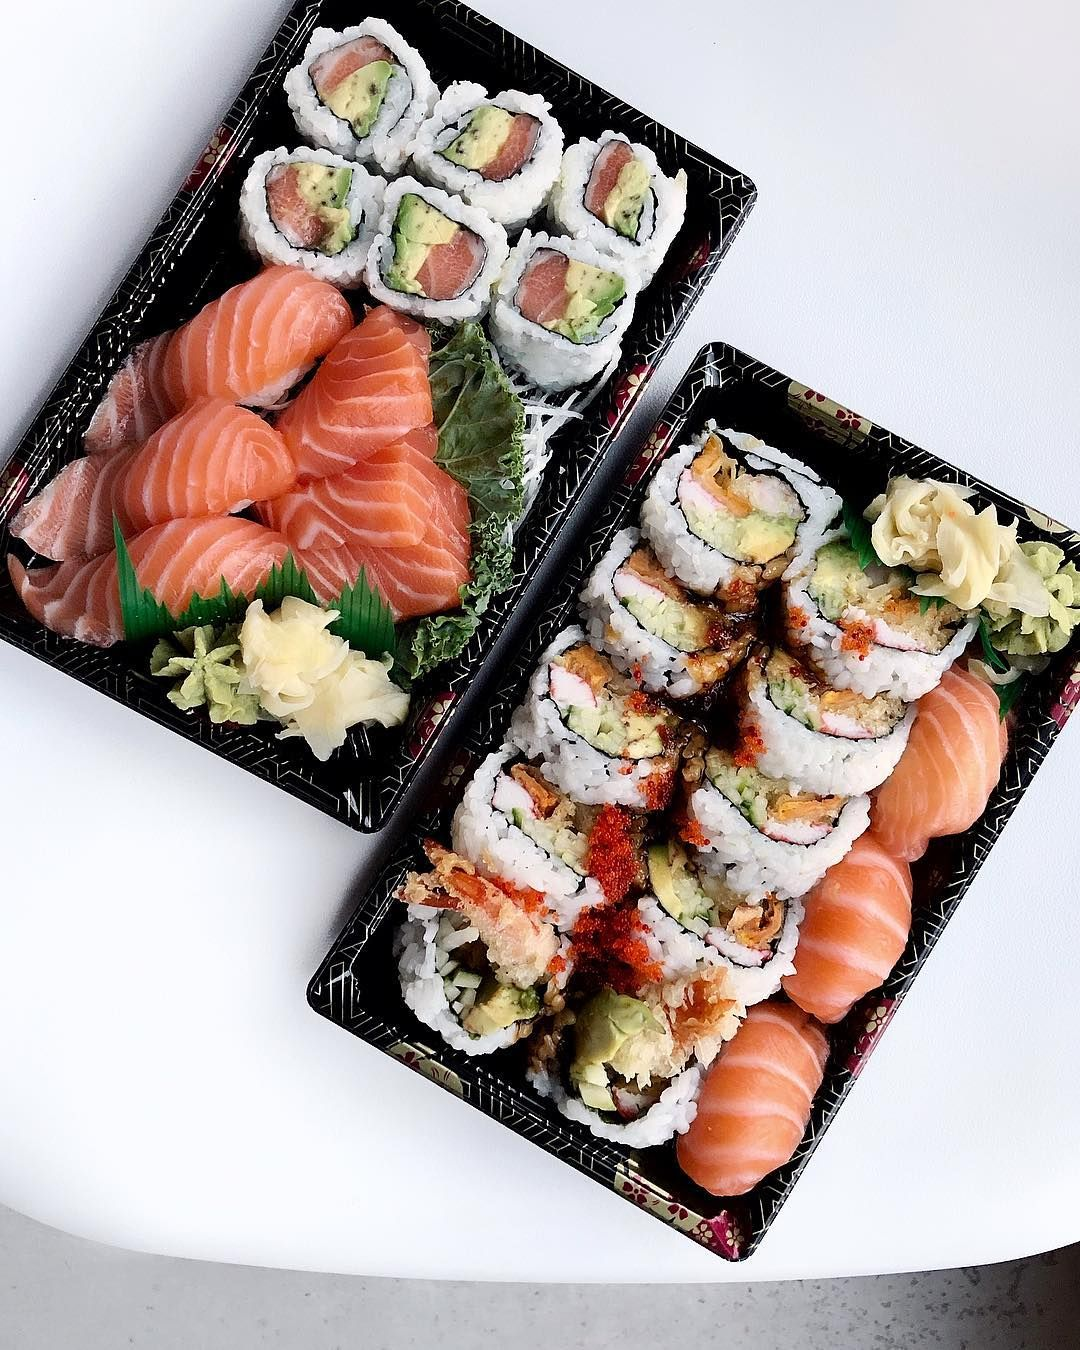 The Three Top Sushi Restaurants In Toronto My Opinion Best Downtown I Ve Included That Serve